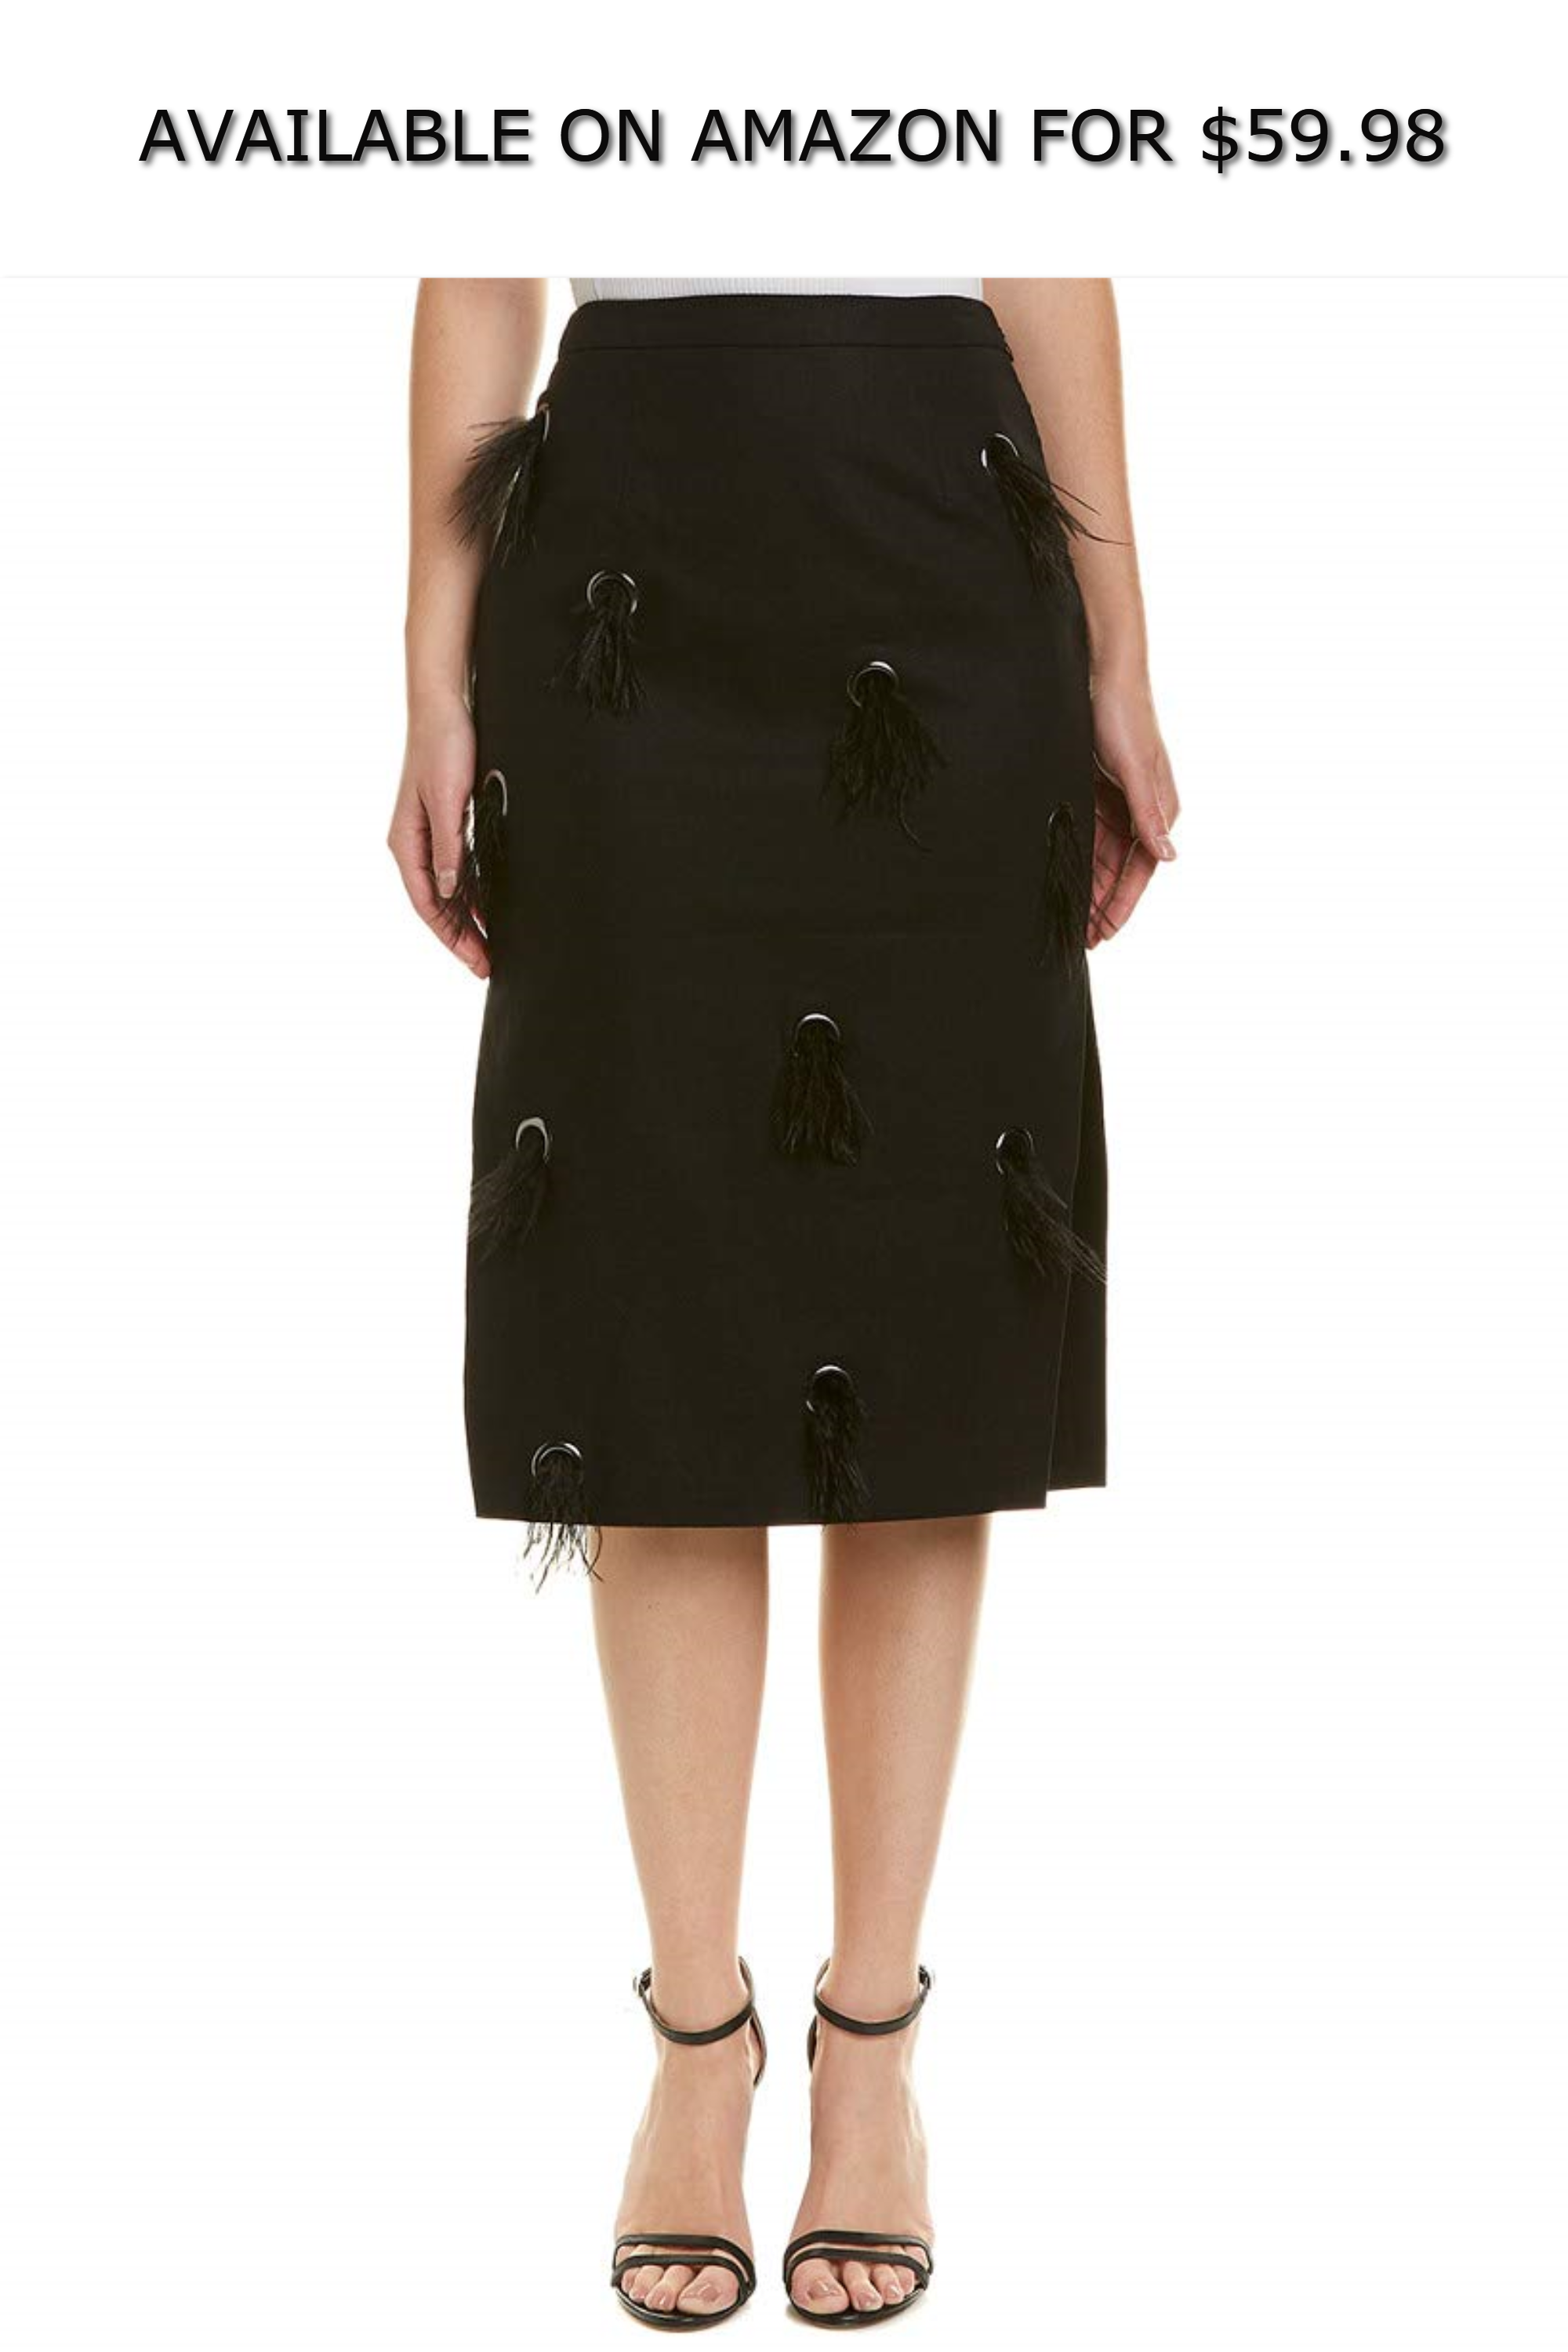 71f6f5541c Isla Womens Feather Linen-Blend Midi Skirt, S, Black ◇ AVAILABLE ON AMAZON